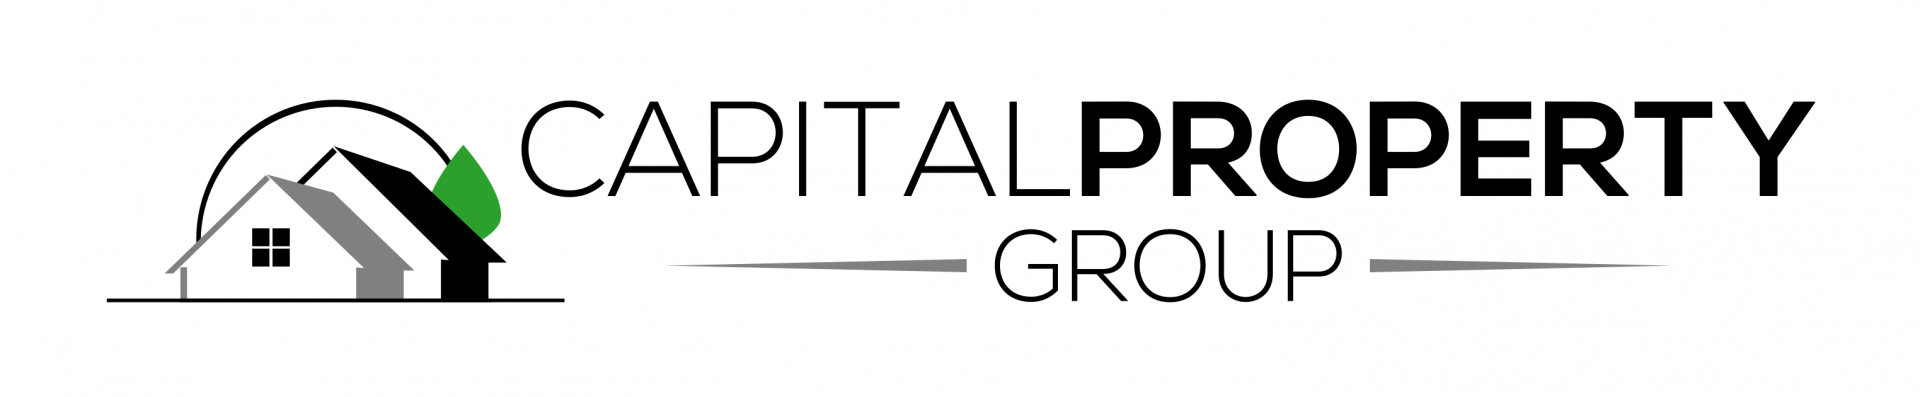 Capital Property Group logo